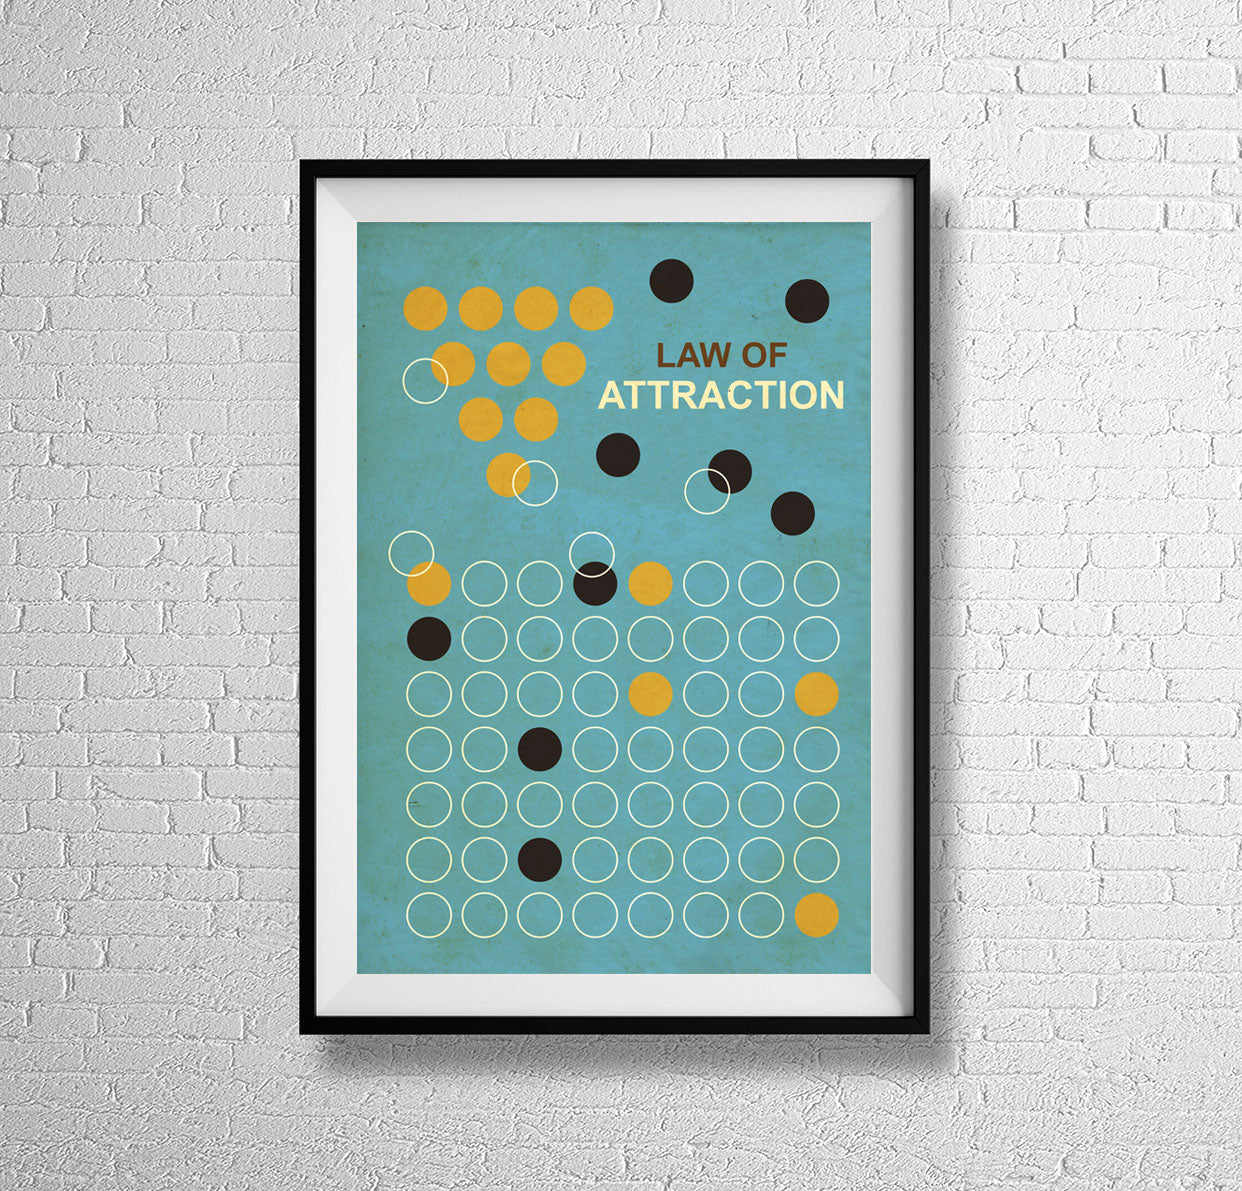 'LAW OF ATTRACTION' retro love science mid century chemical attraction atomic structure minimalist poster gallery art print - 'Unframed'